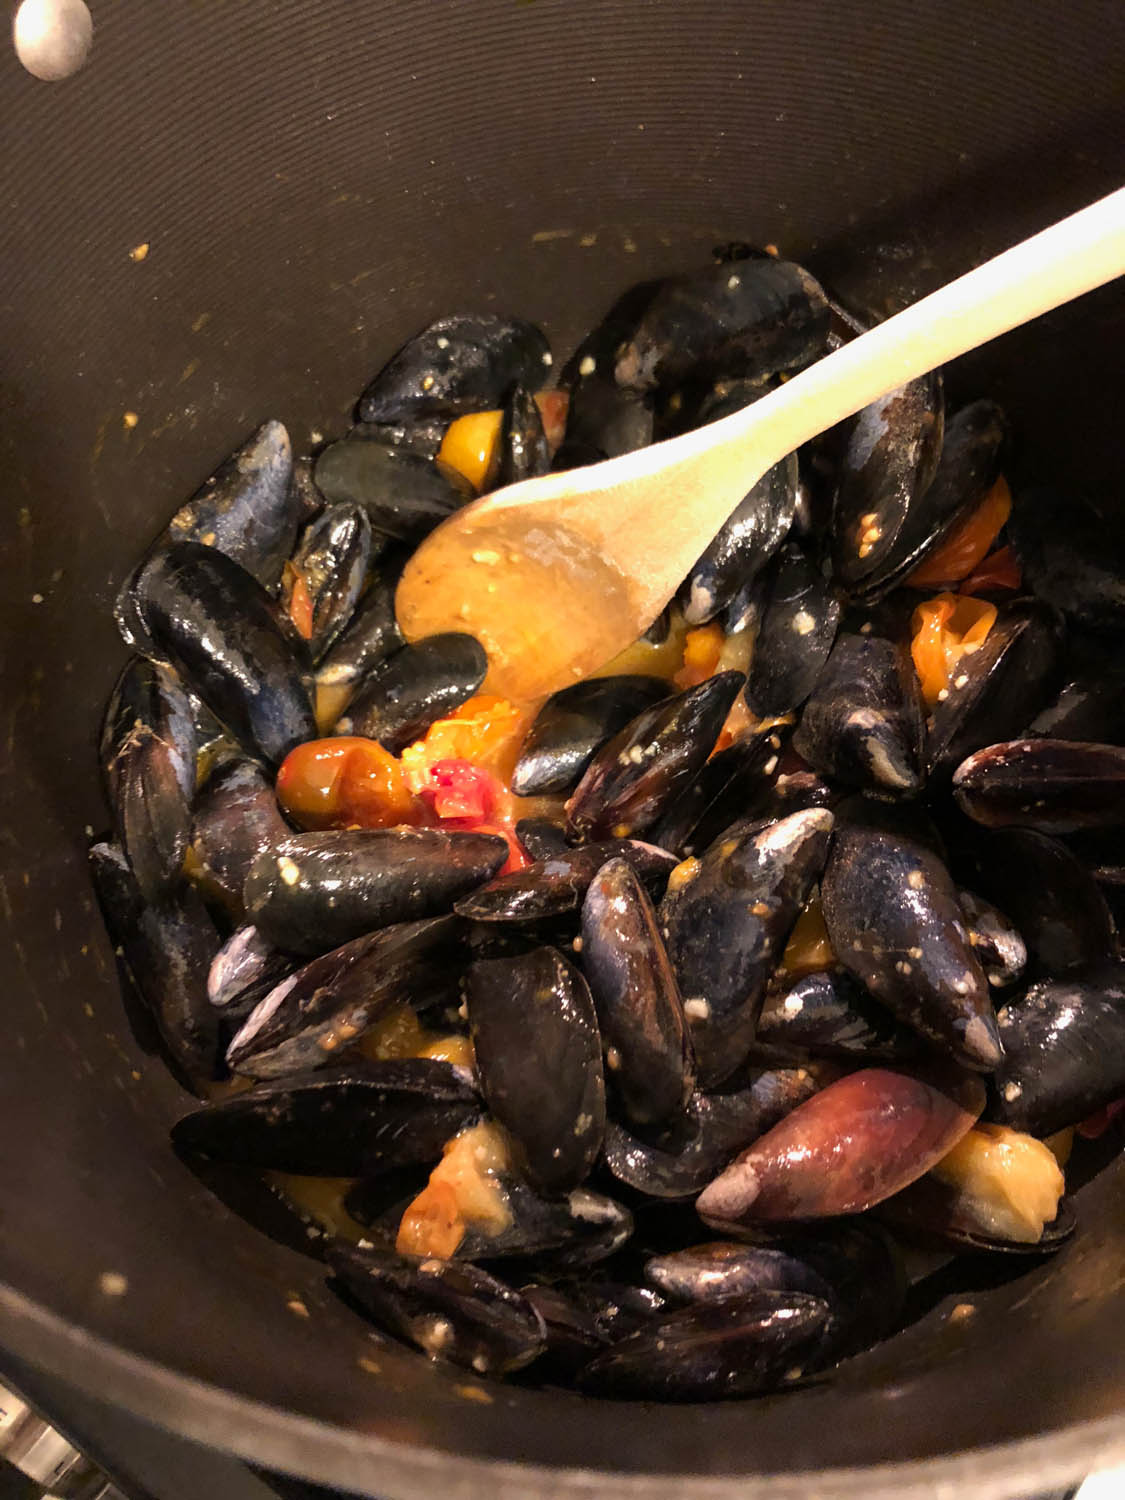 Stir mussels with broth to coat.